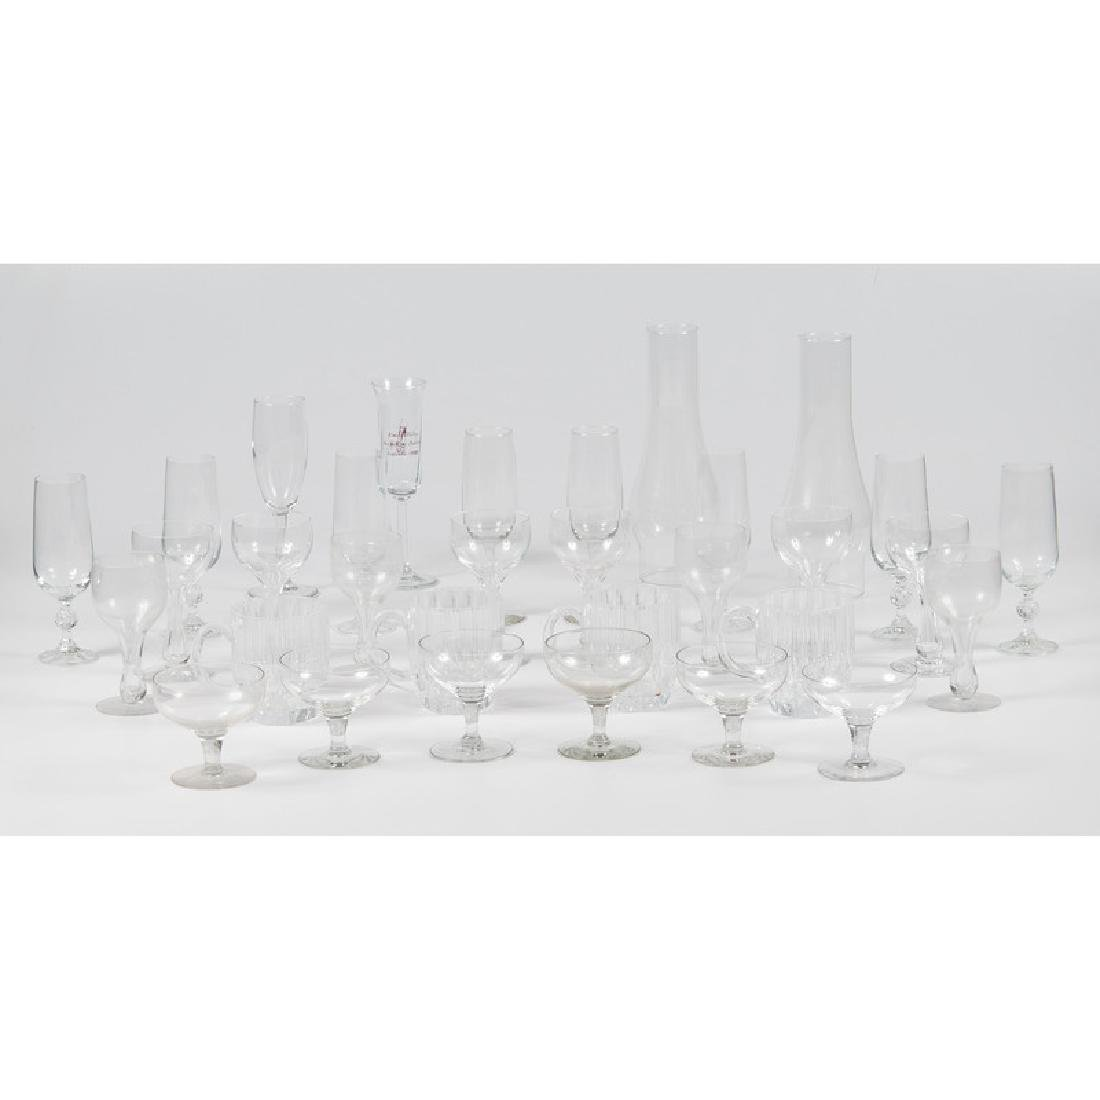 Assorted Glass Stemware and Mugs, PLUS